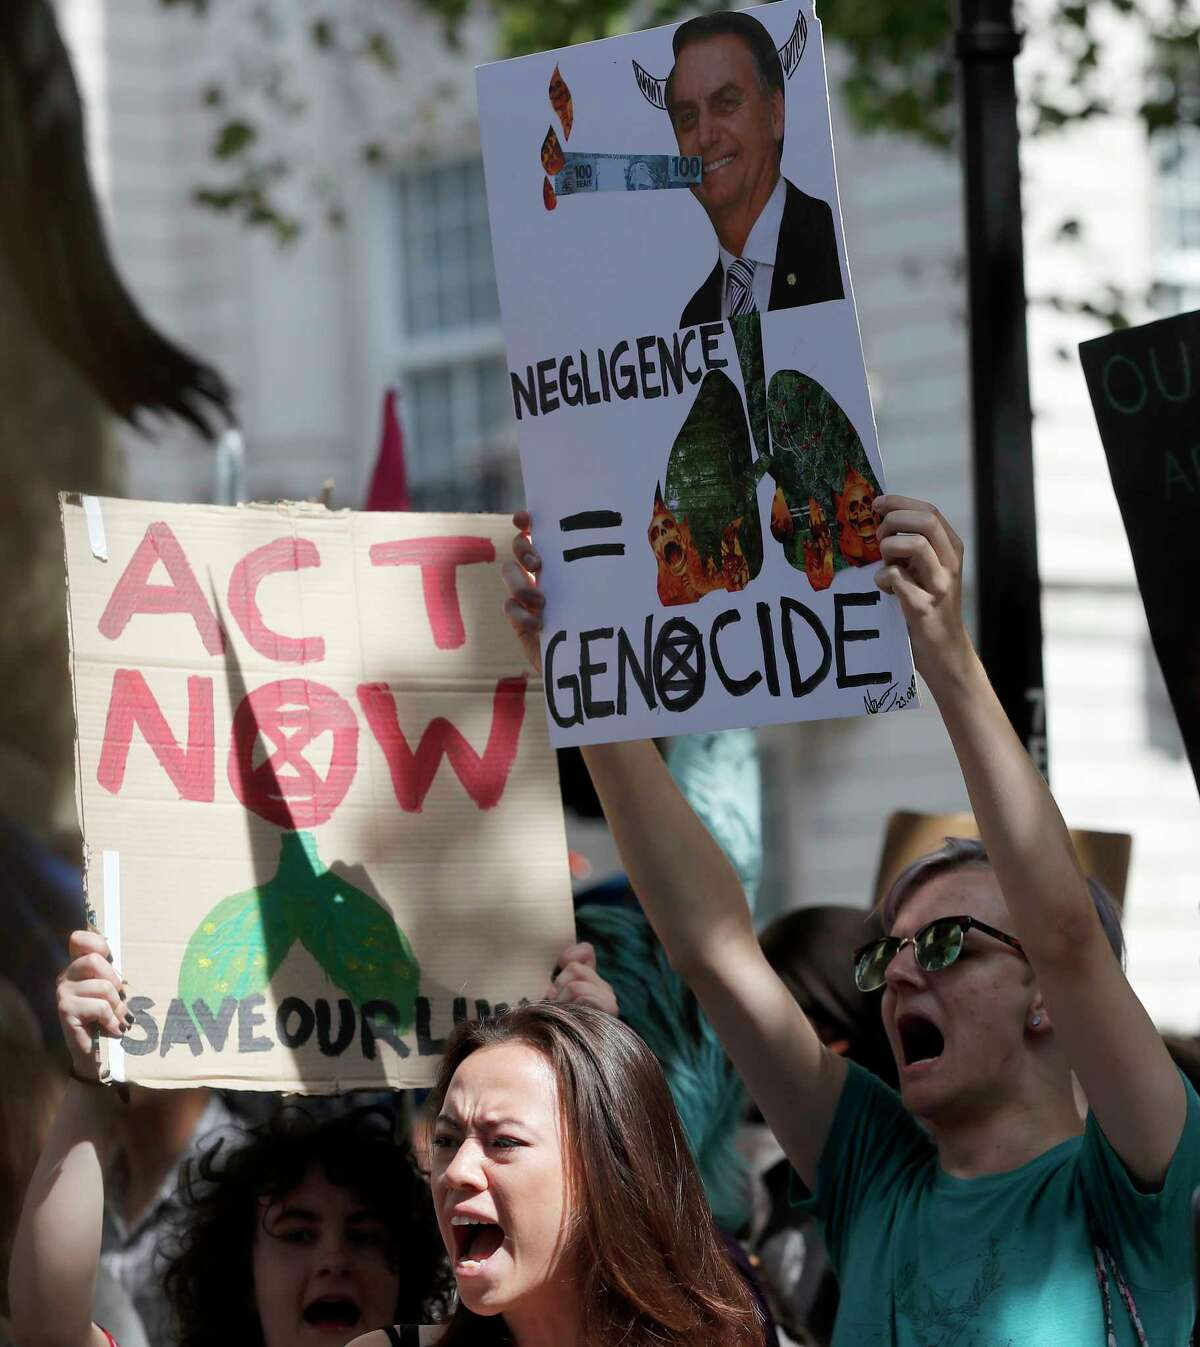 Extinction Rebellion activists protest outside the Brazilian Embassy in London, Friday, Aug. 23, 2019, to call on Brazil's President Jair Bolsonaro to act to protect the Amazon rainforest. The European Union is throwing its weight behind French President Emmanuel Macron's call to put the Amazon fires on the agenda of this weekend's G-7 summit of world leaders in France.